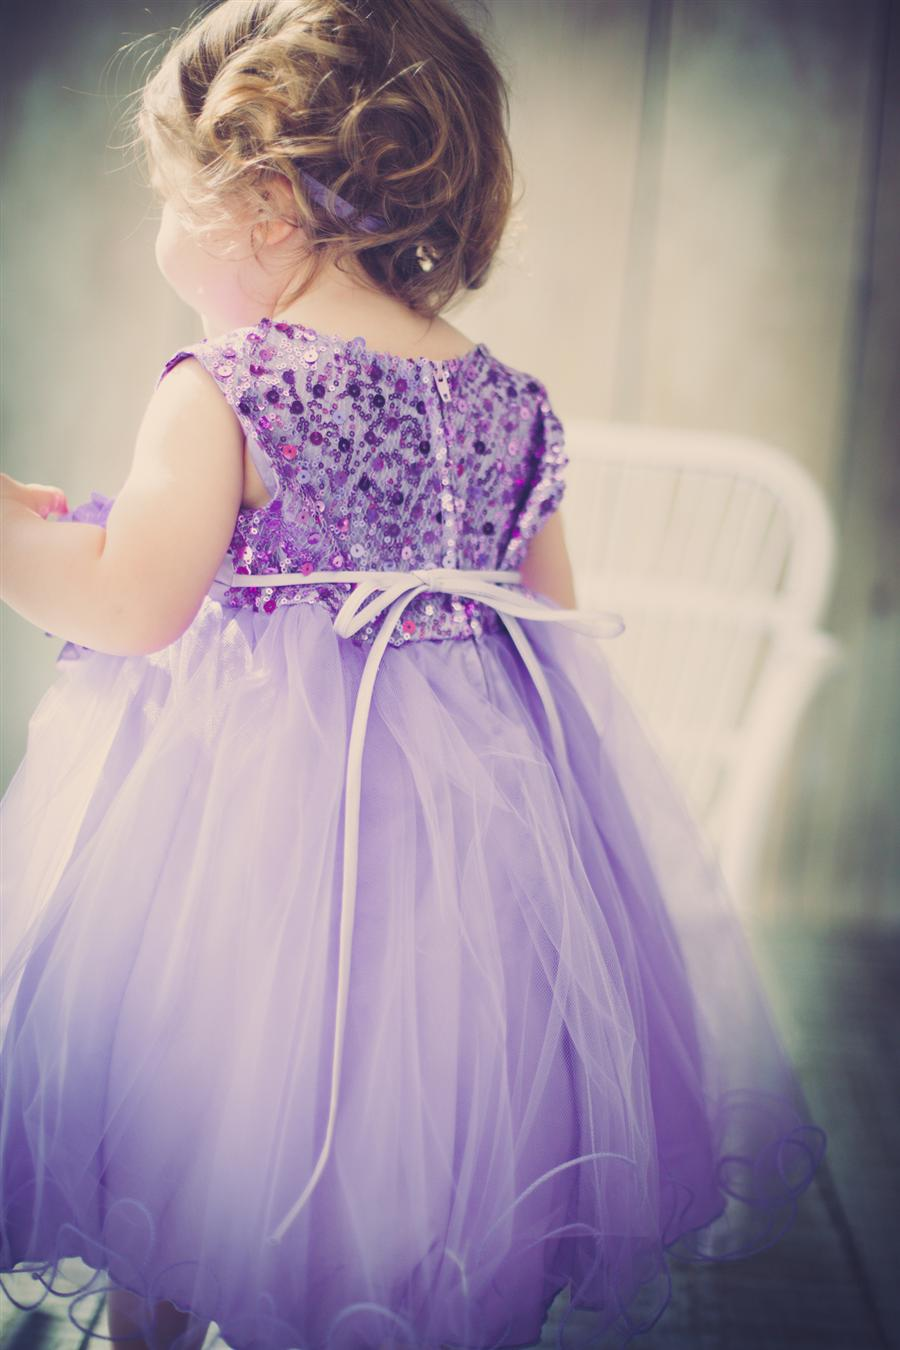 59f65001e Glitzy Sequined Tulle Baby Dress Girls Dress